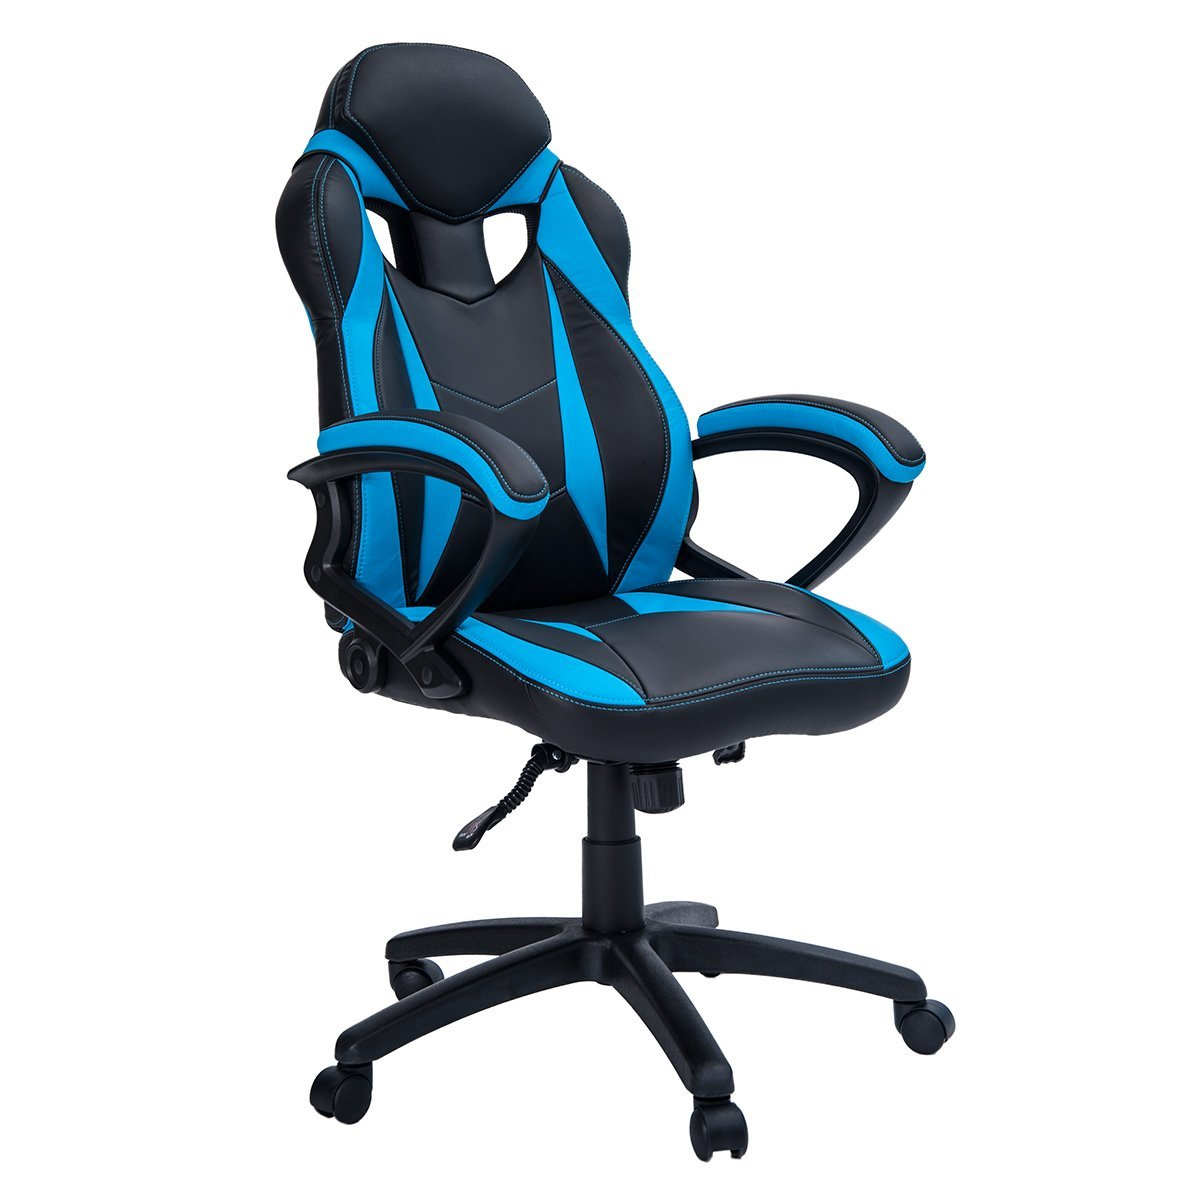 Gaiming Chair Best Cheap Gaming Chairs Merax Ergonomics Review